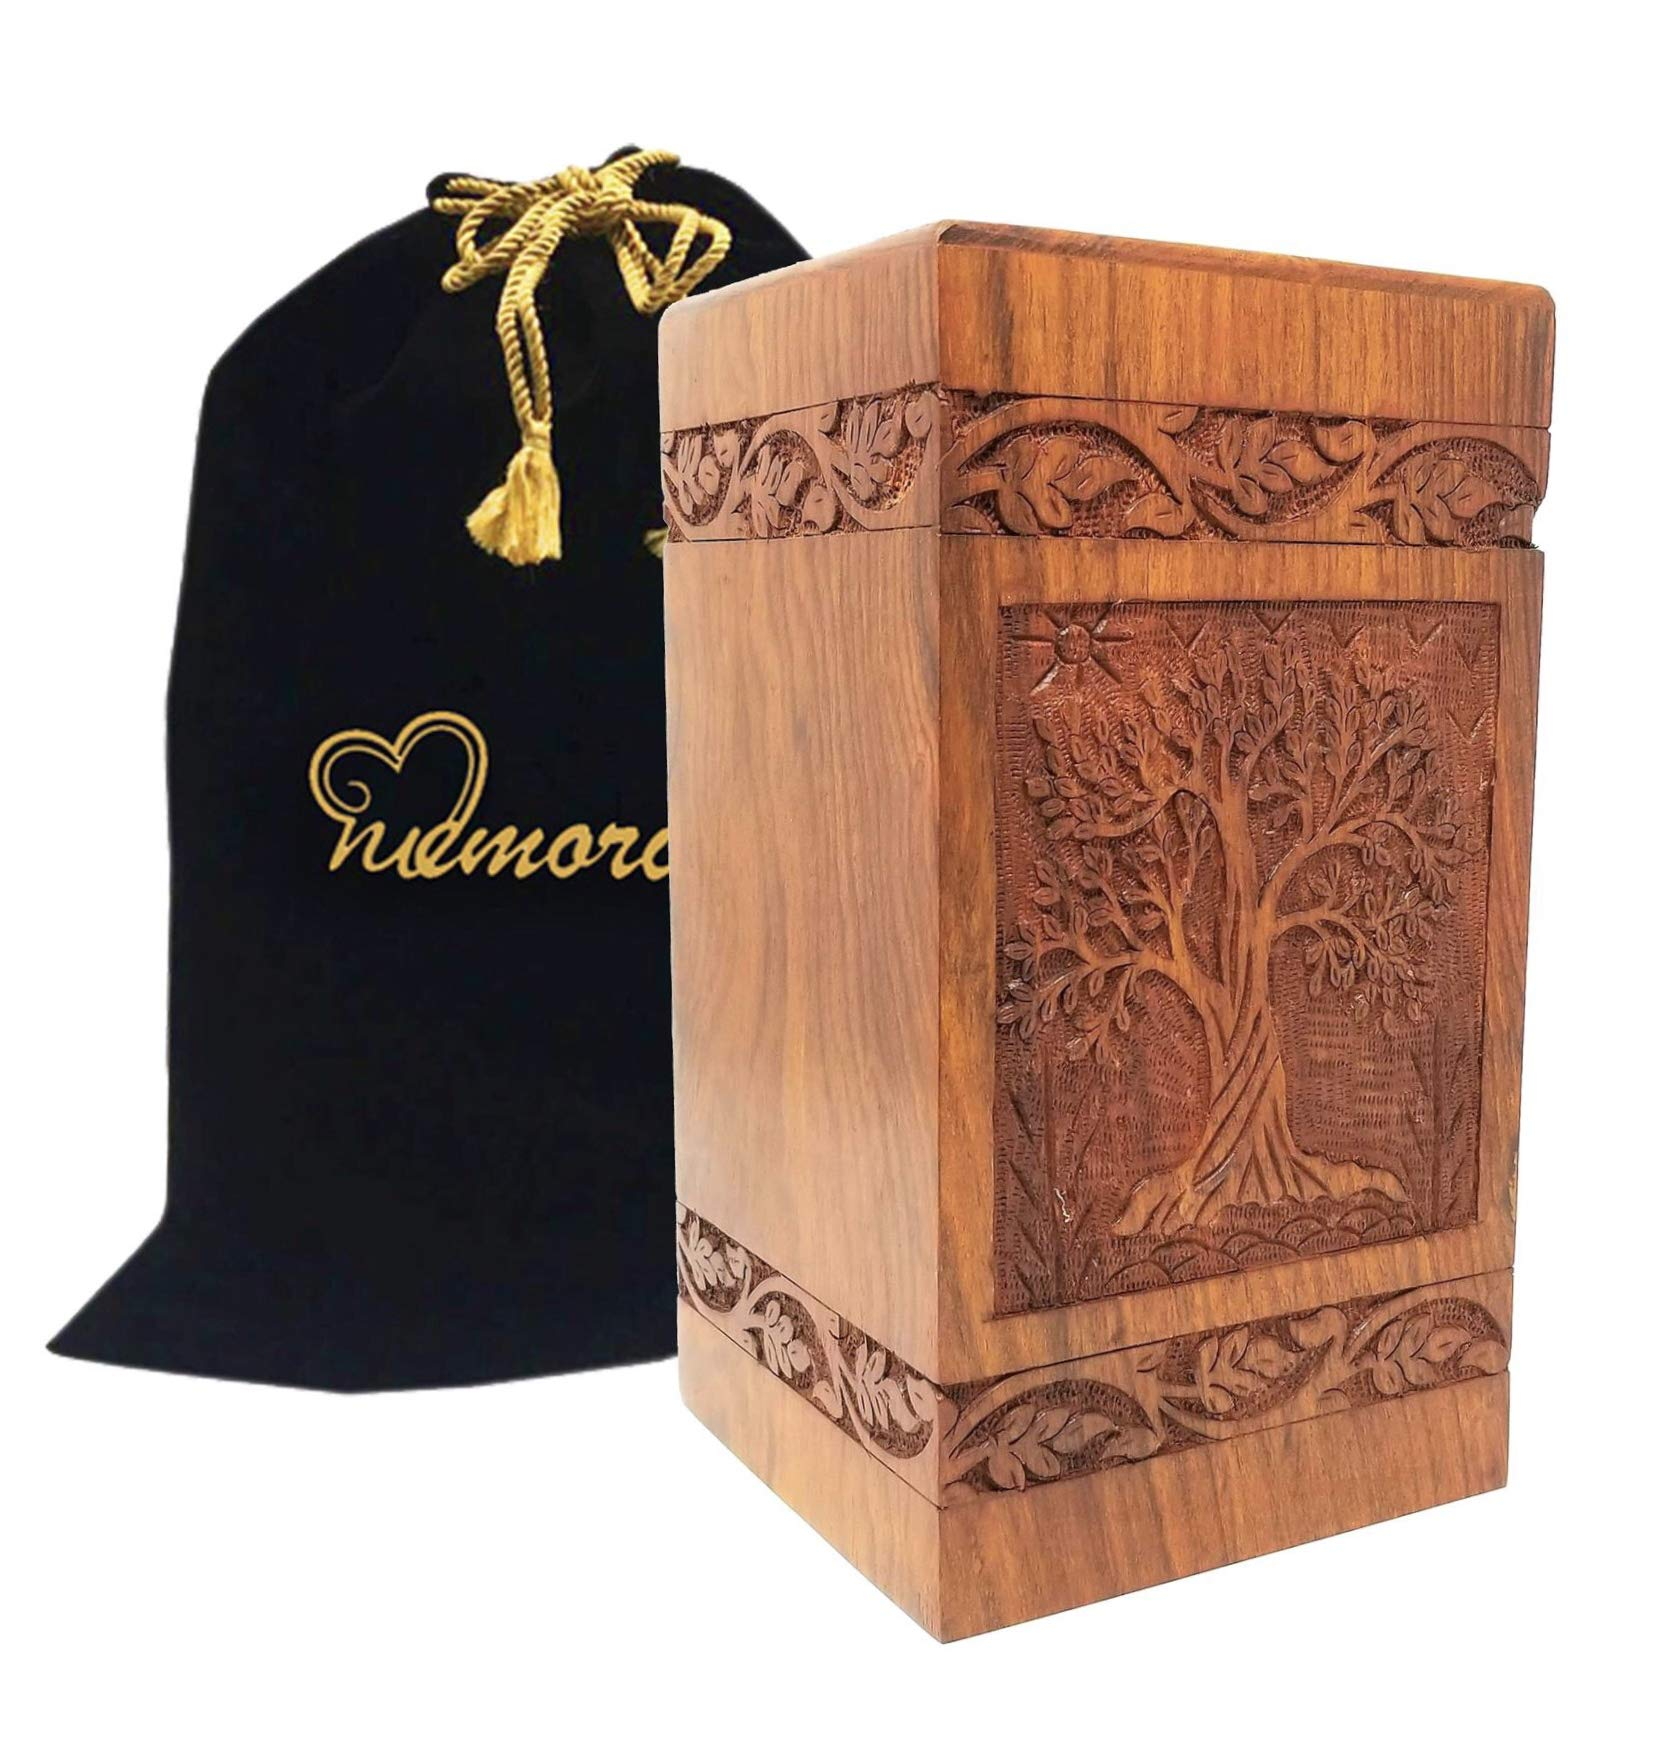 Memorials4u Solid Rosewood Cremation Urn with Hand-Carved Real Tree Design for Human Ashes - Adult Funeral Urn Handcrafted and Engraved - Affordable Urn for Ashes - Wood Urn (Soulful Tree) by MEMORIALS 4U